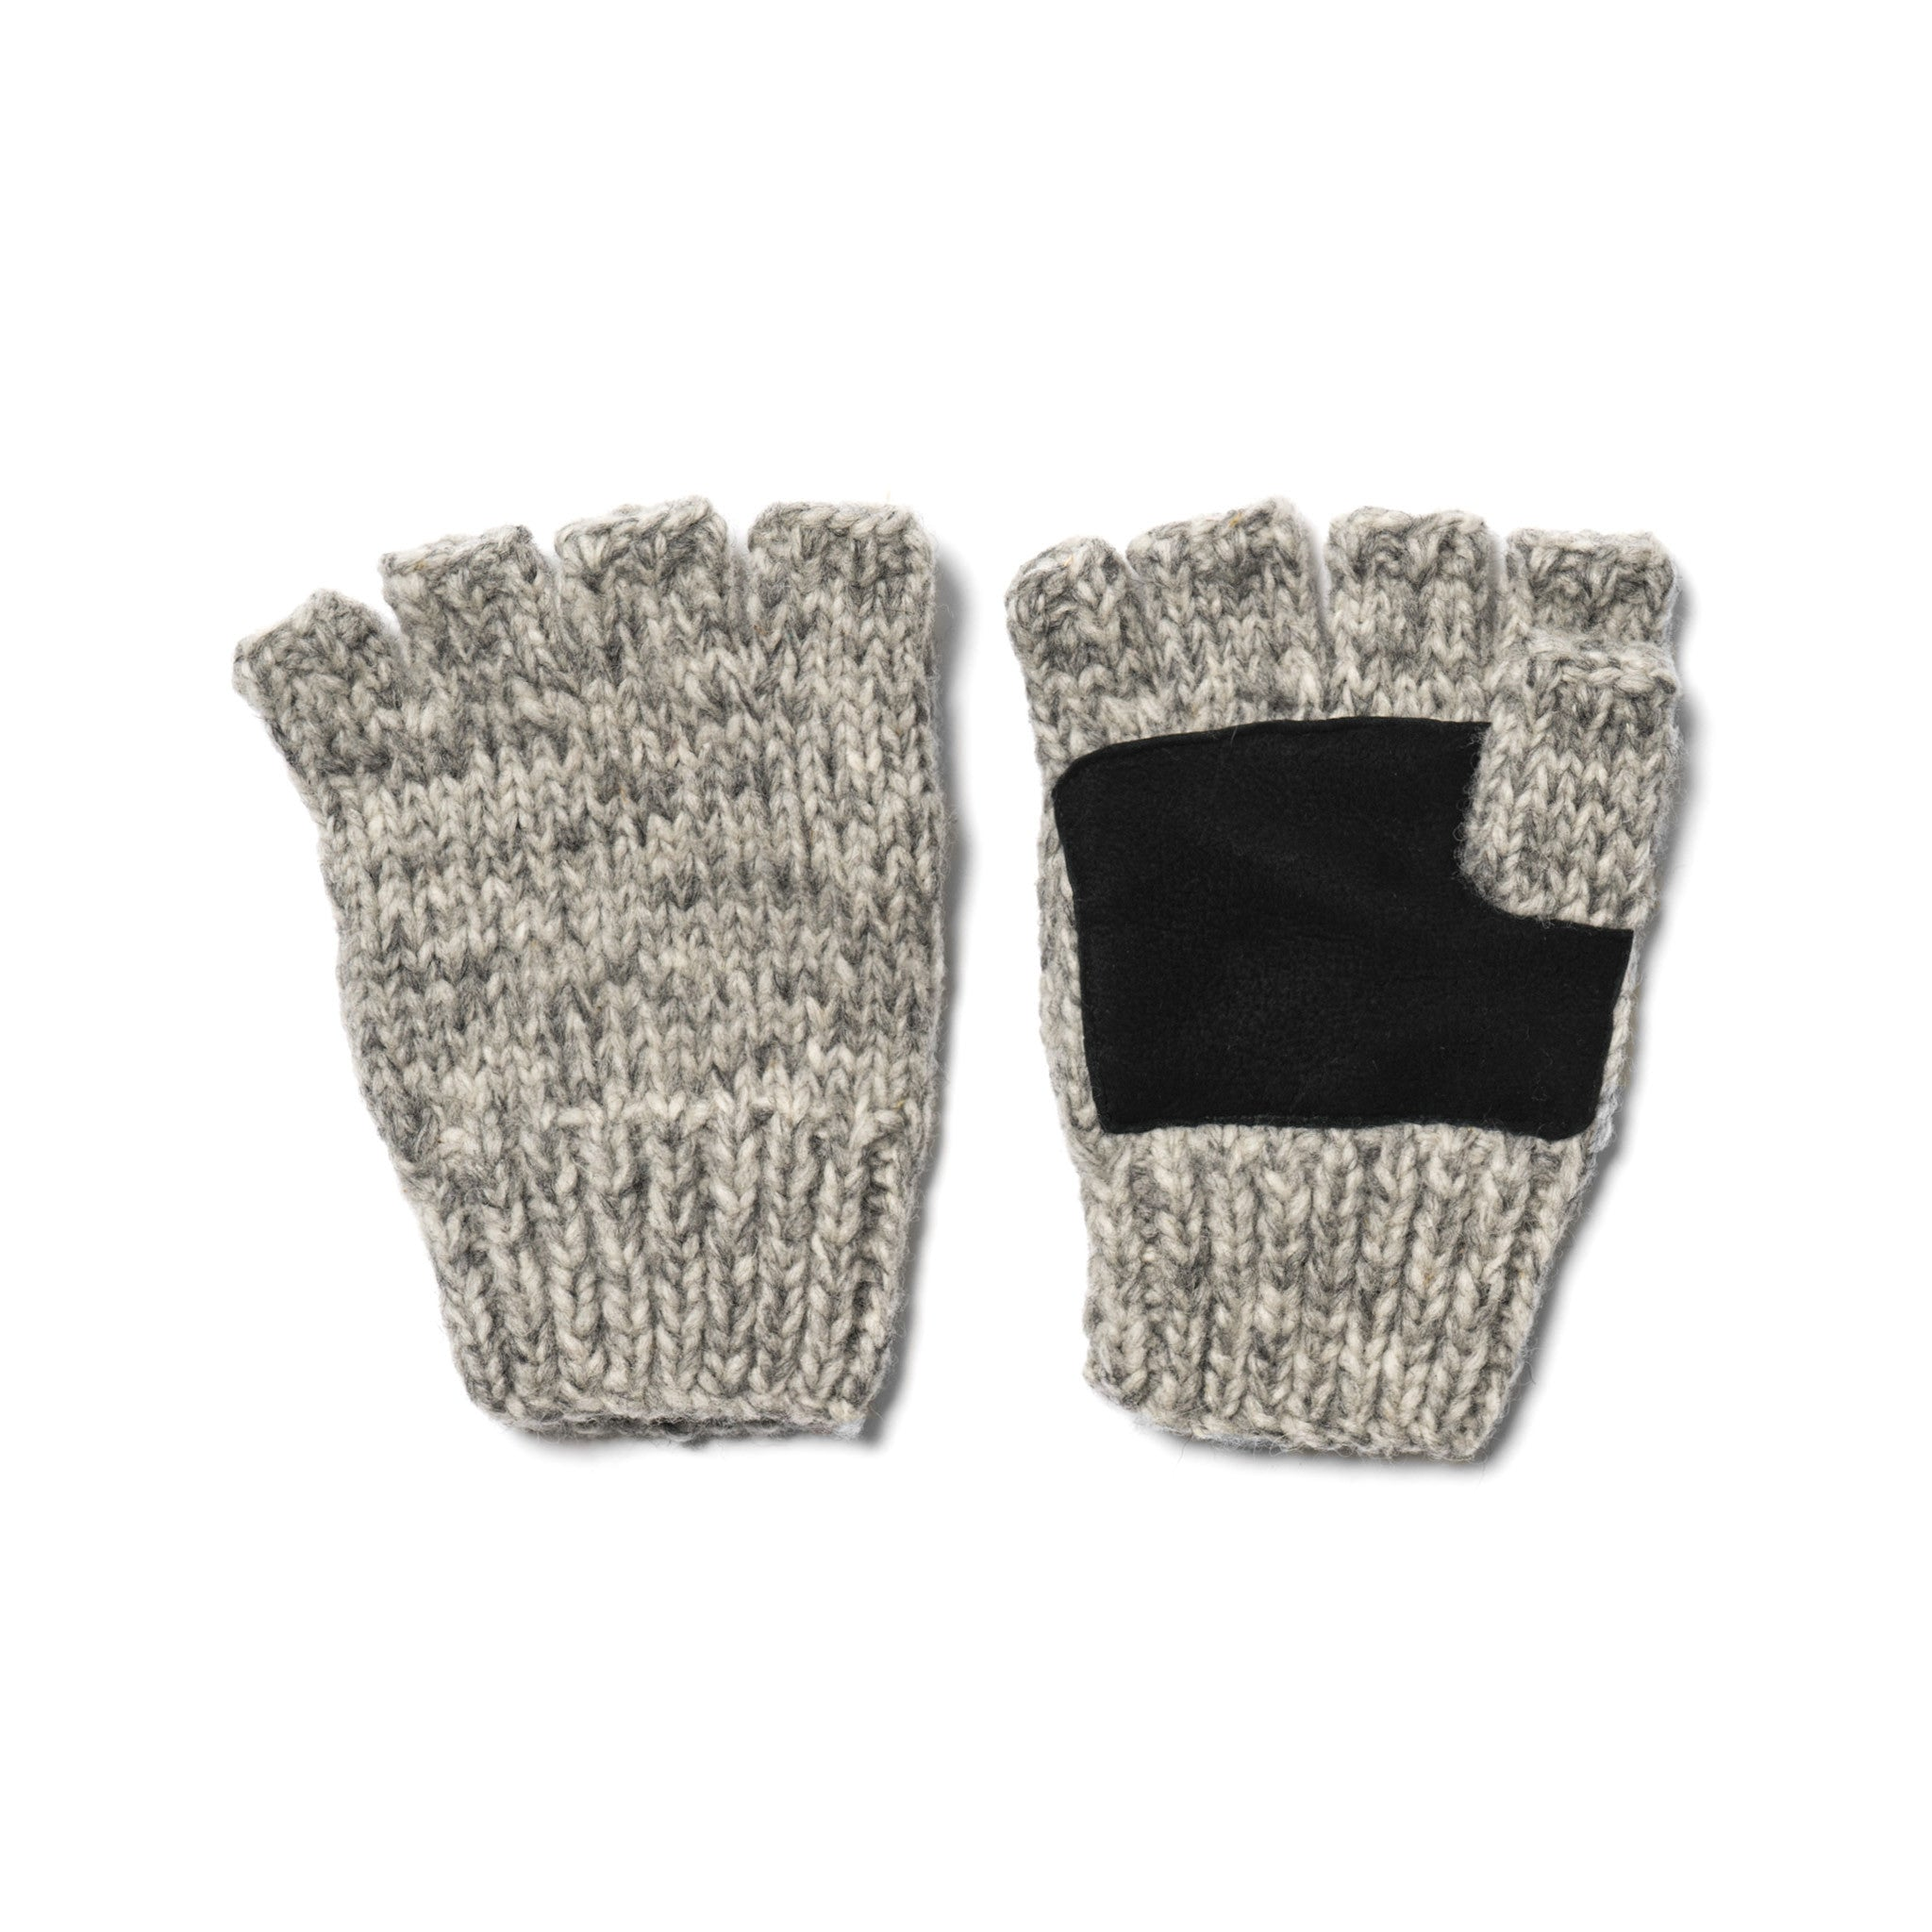 Fingerless gloves canada - Days Old 230 Maple Canada Knit Fingerless Gloves